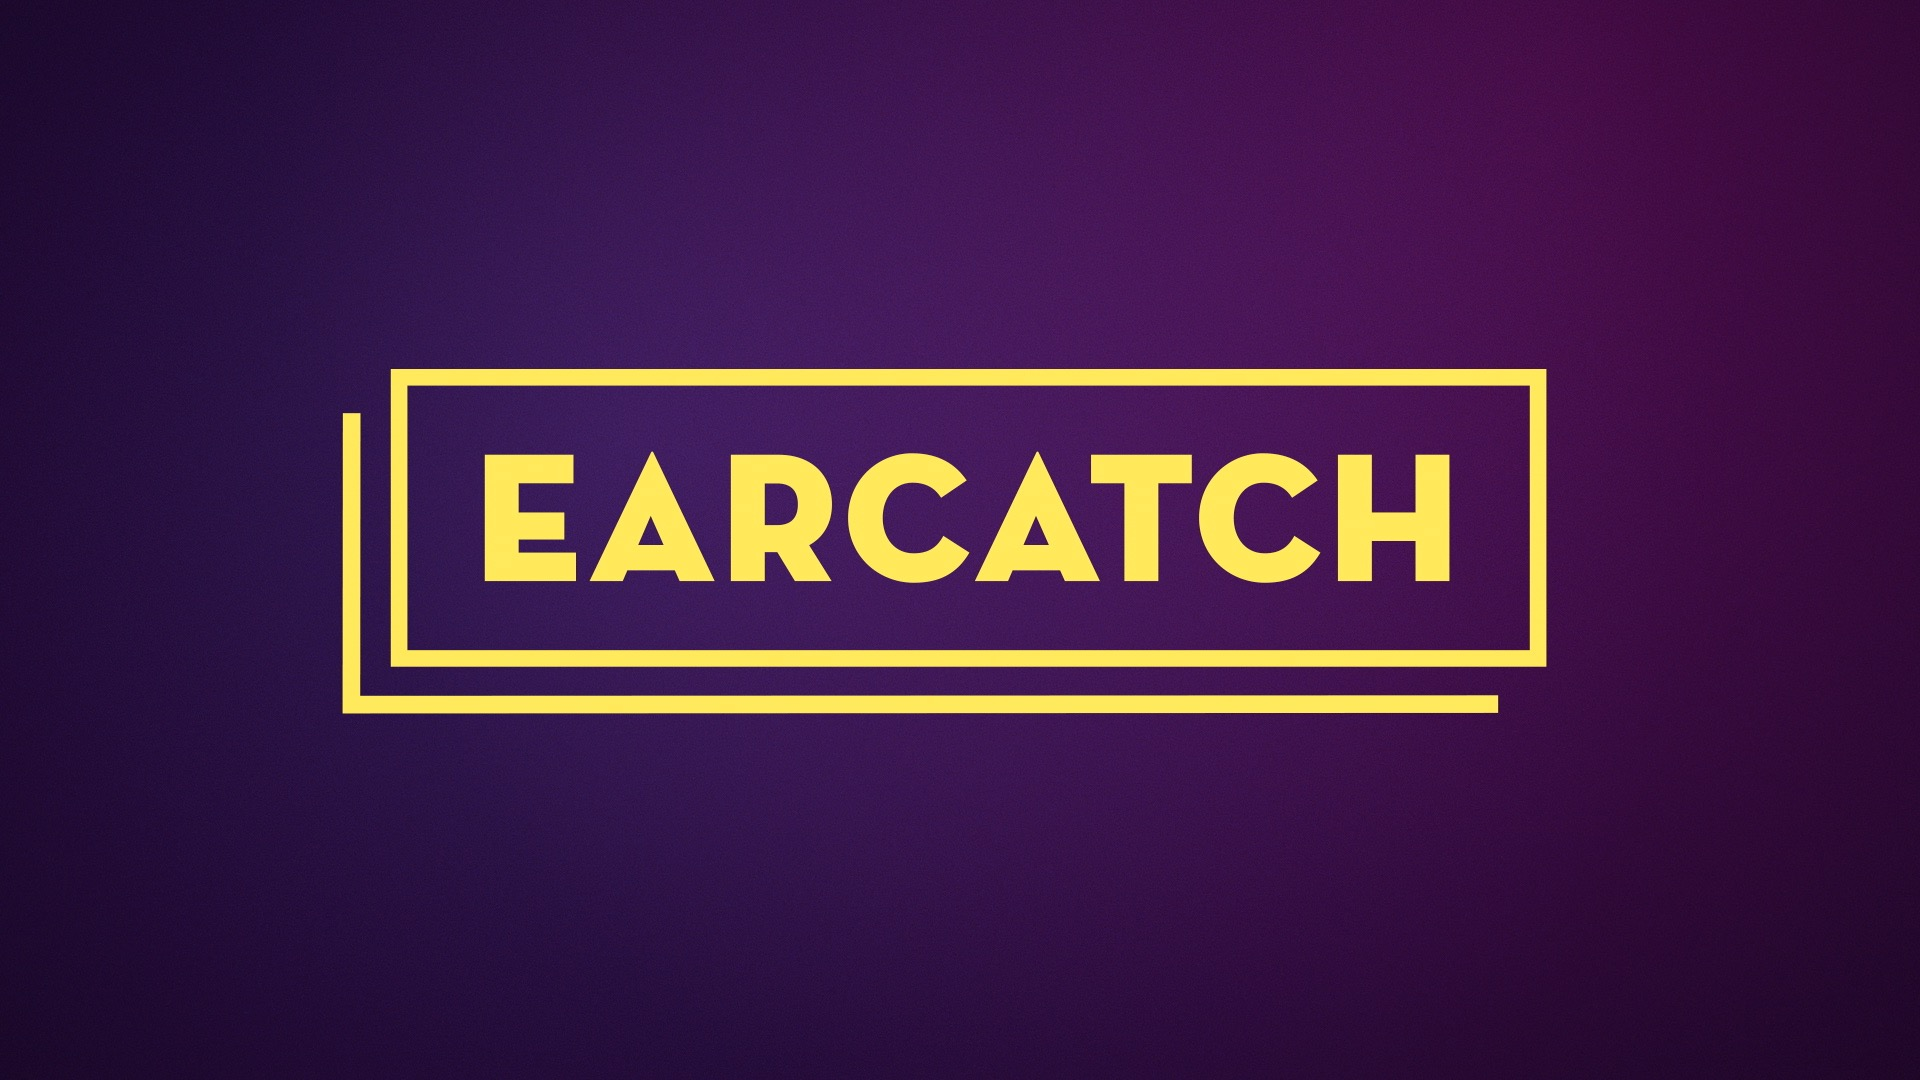 Image: Earcatch logo, written in yellow in a purple background